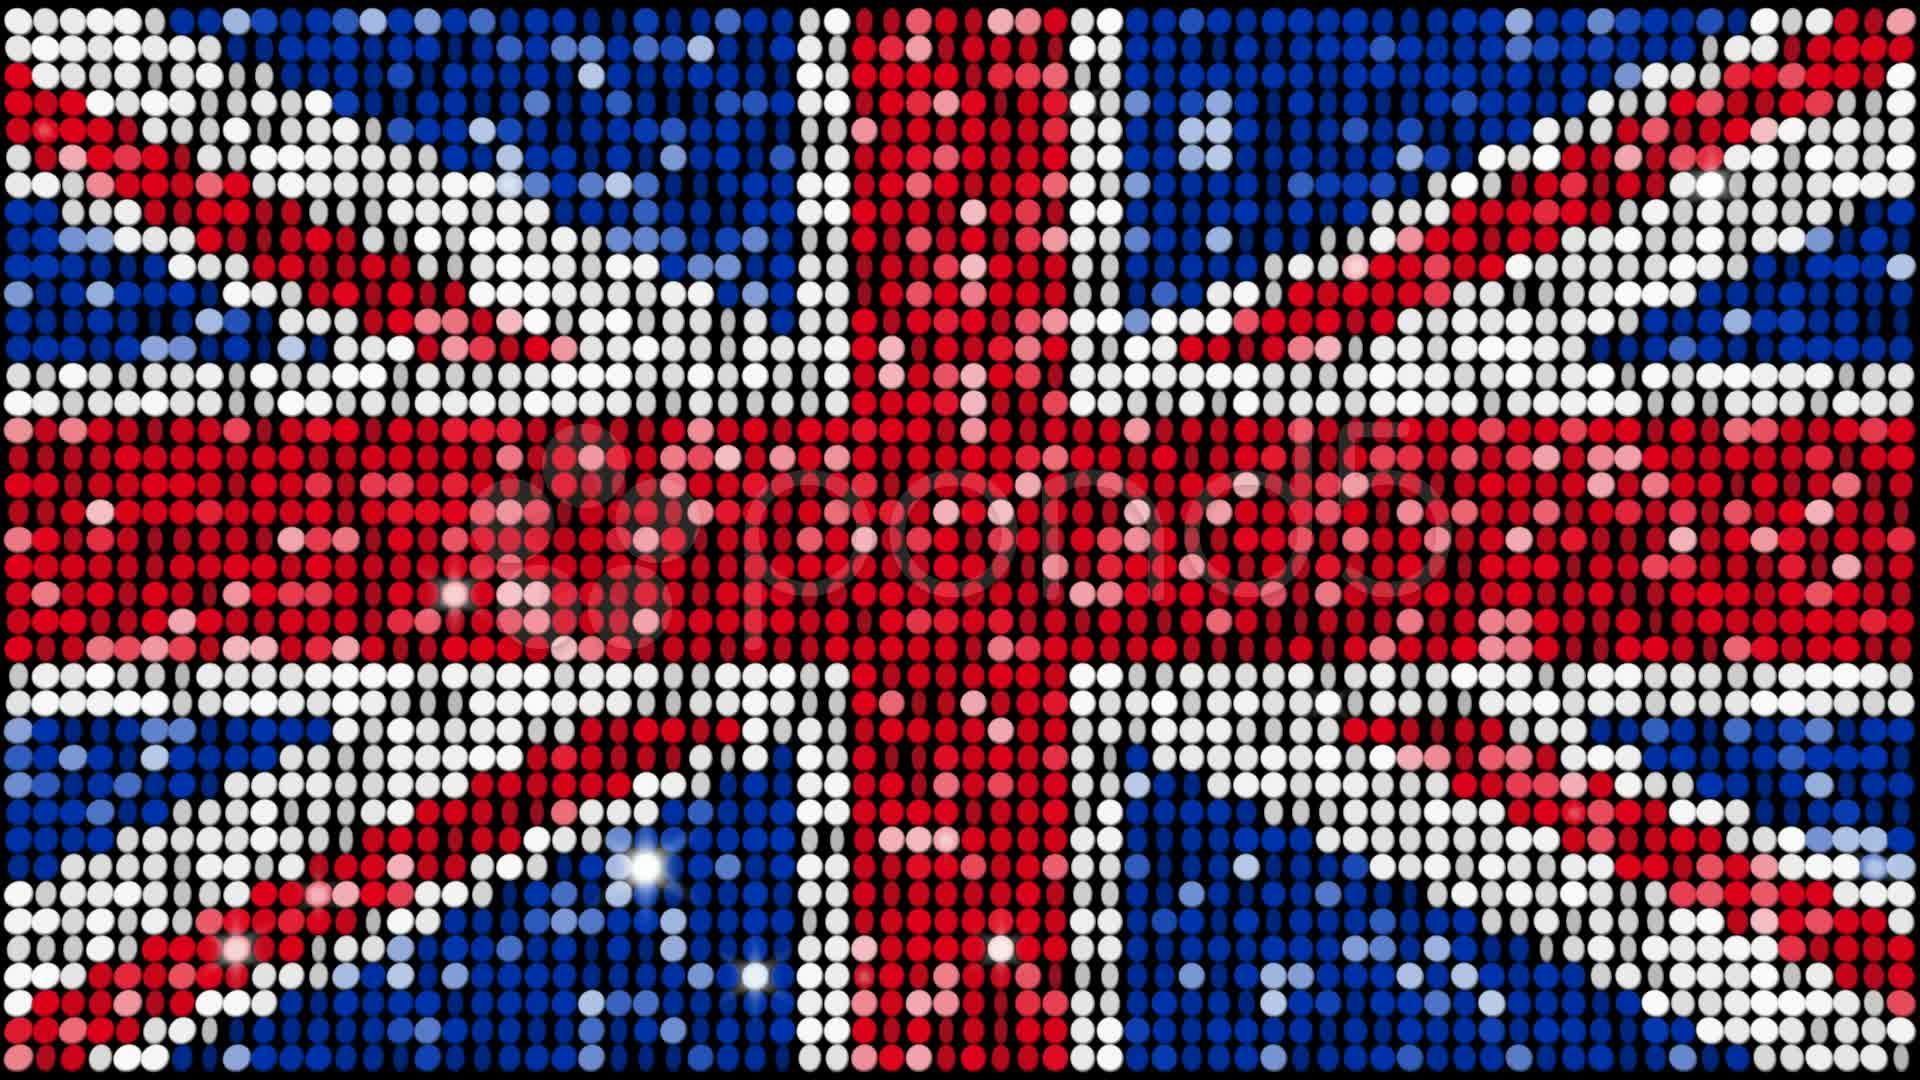 The flag of Great Britain HD Wallpaper 1920x1080